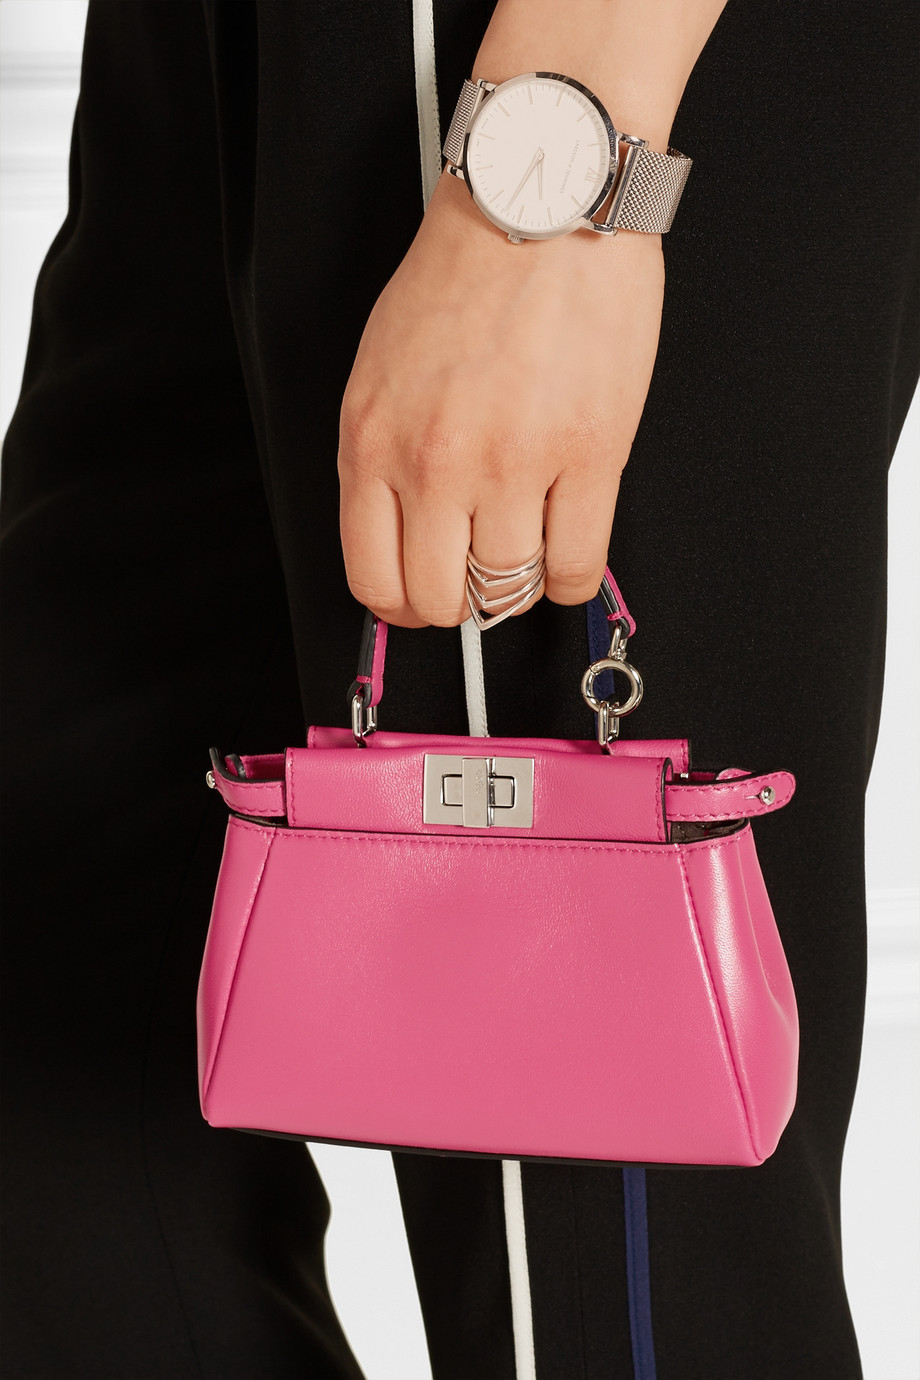 b4740e0472f0 ... italy fendi peekaboo micro leather shoulder bag in pink lyst 2636d fc0a9